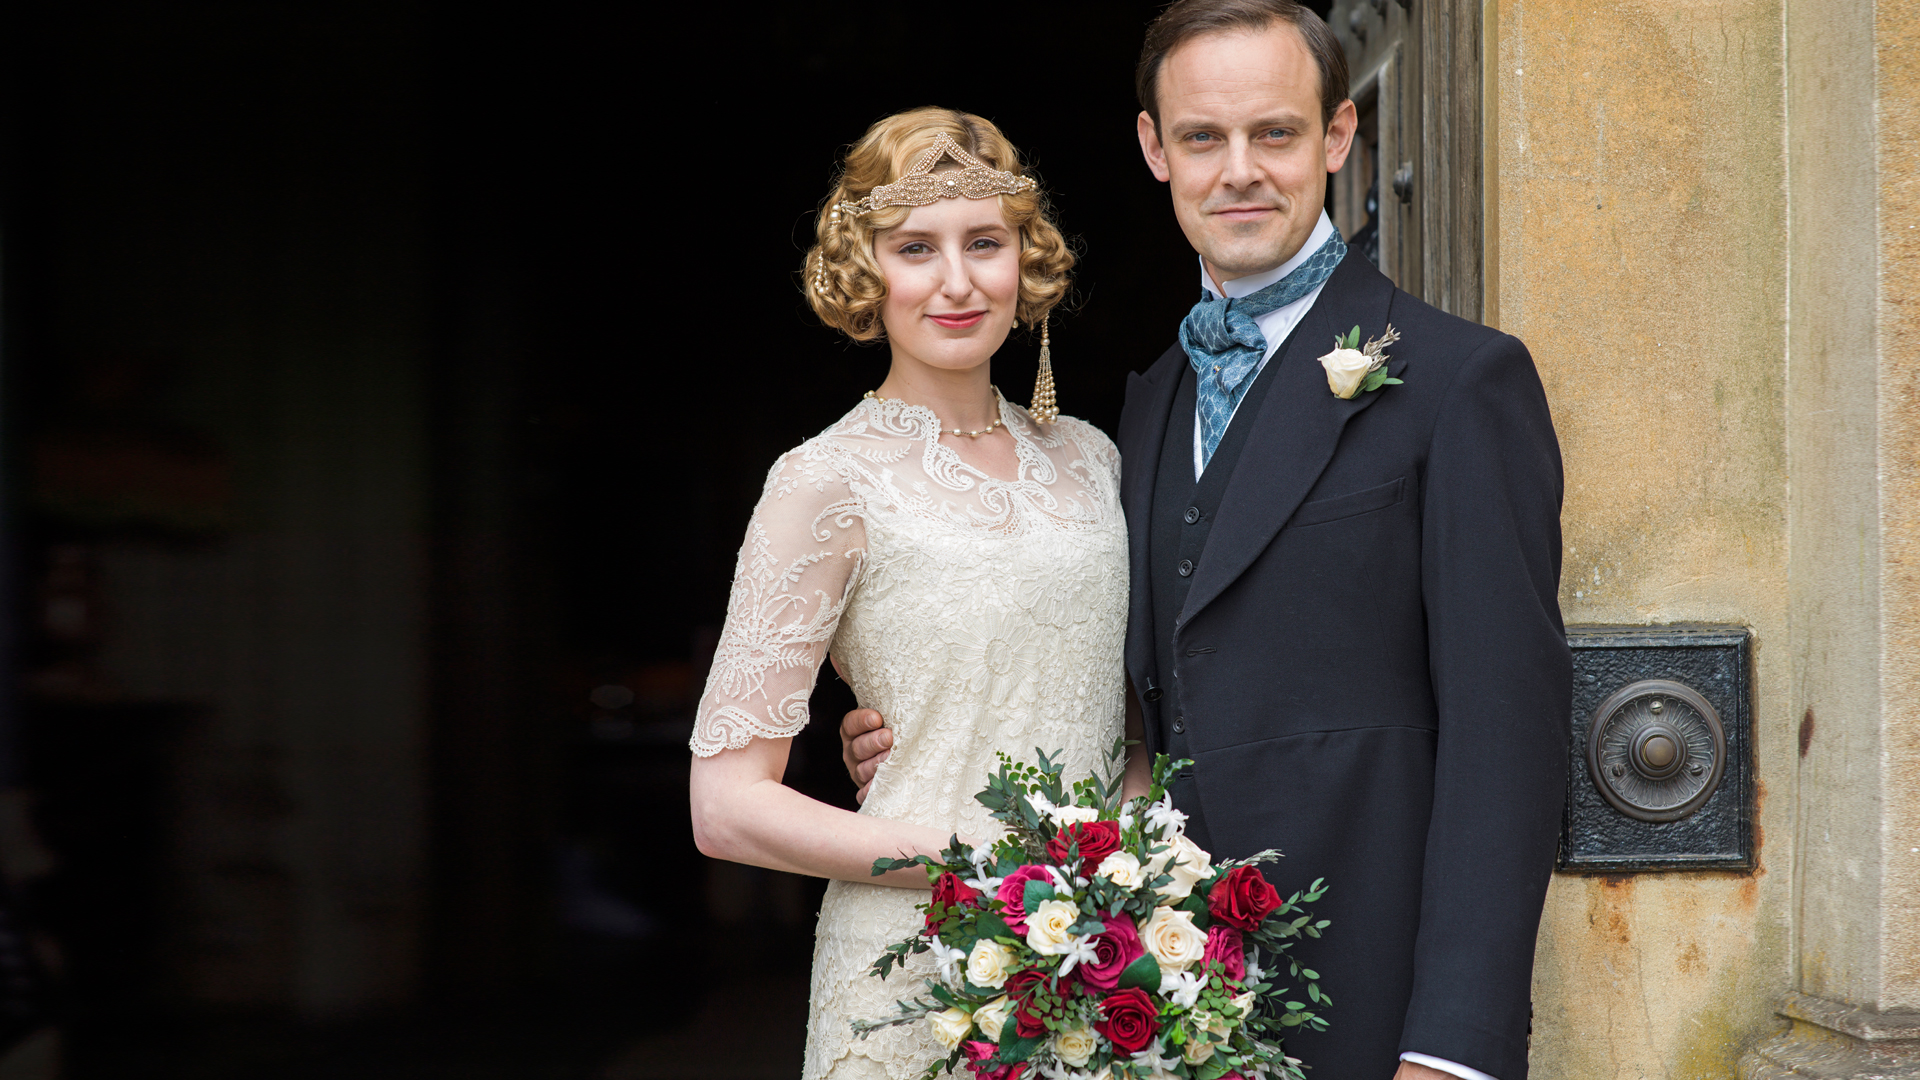 downton abbey season 4 episode 9 free online